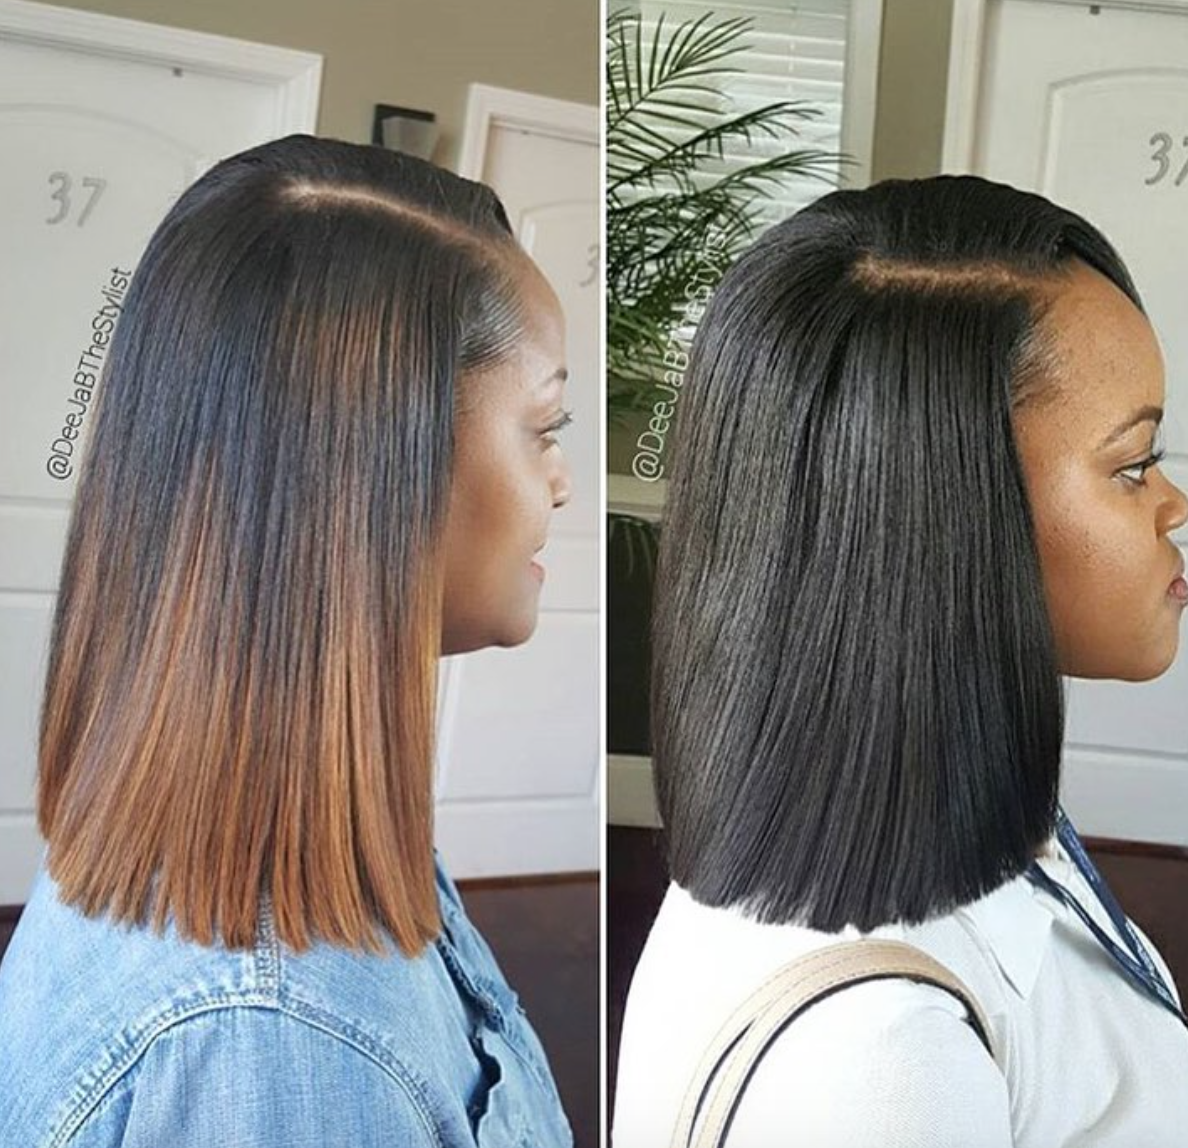 Amazing Sew In Vs Quick Weave By Deejabthestylist Https Blackhairinformation Com Hairstyle Gallery Amazing S Quick Weave Hairstyles Short Hair Styles Hair